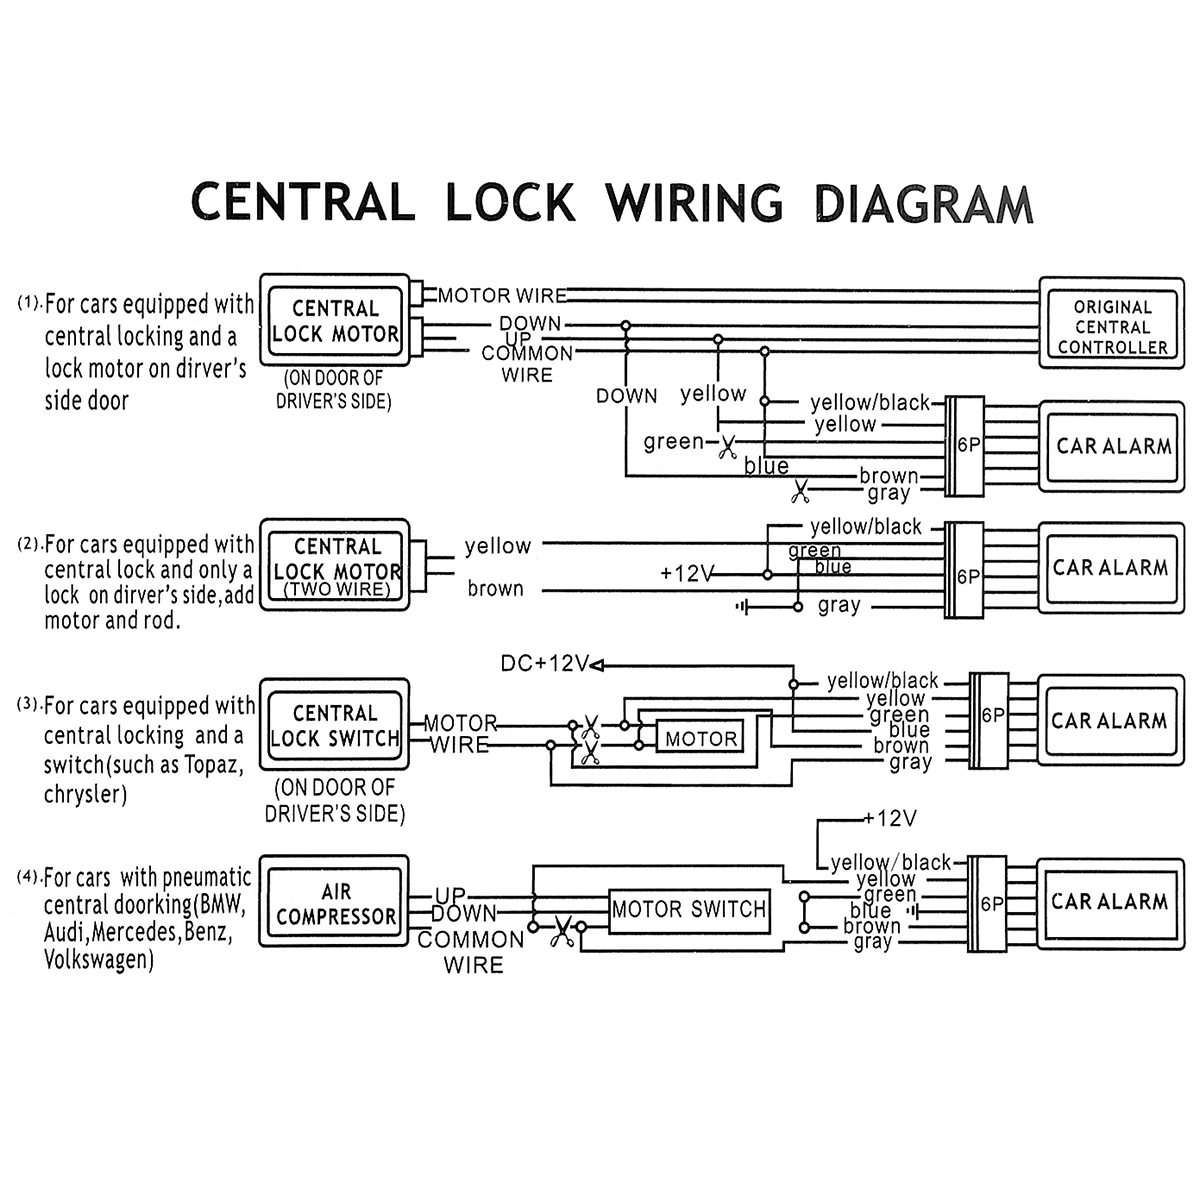 ford puma central locking wiring diagram visio 2013 uml deployment remote motorcycle